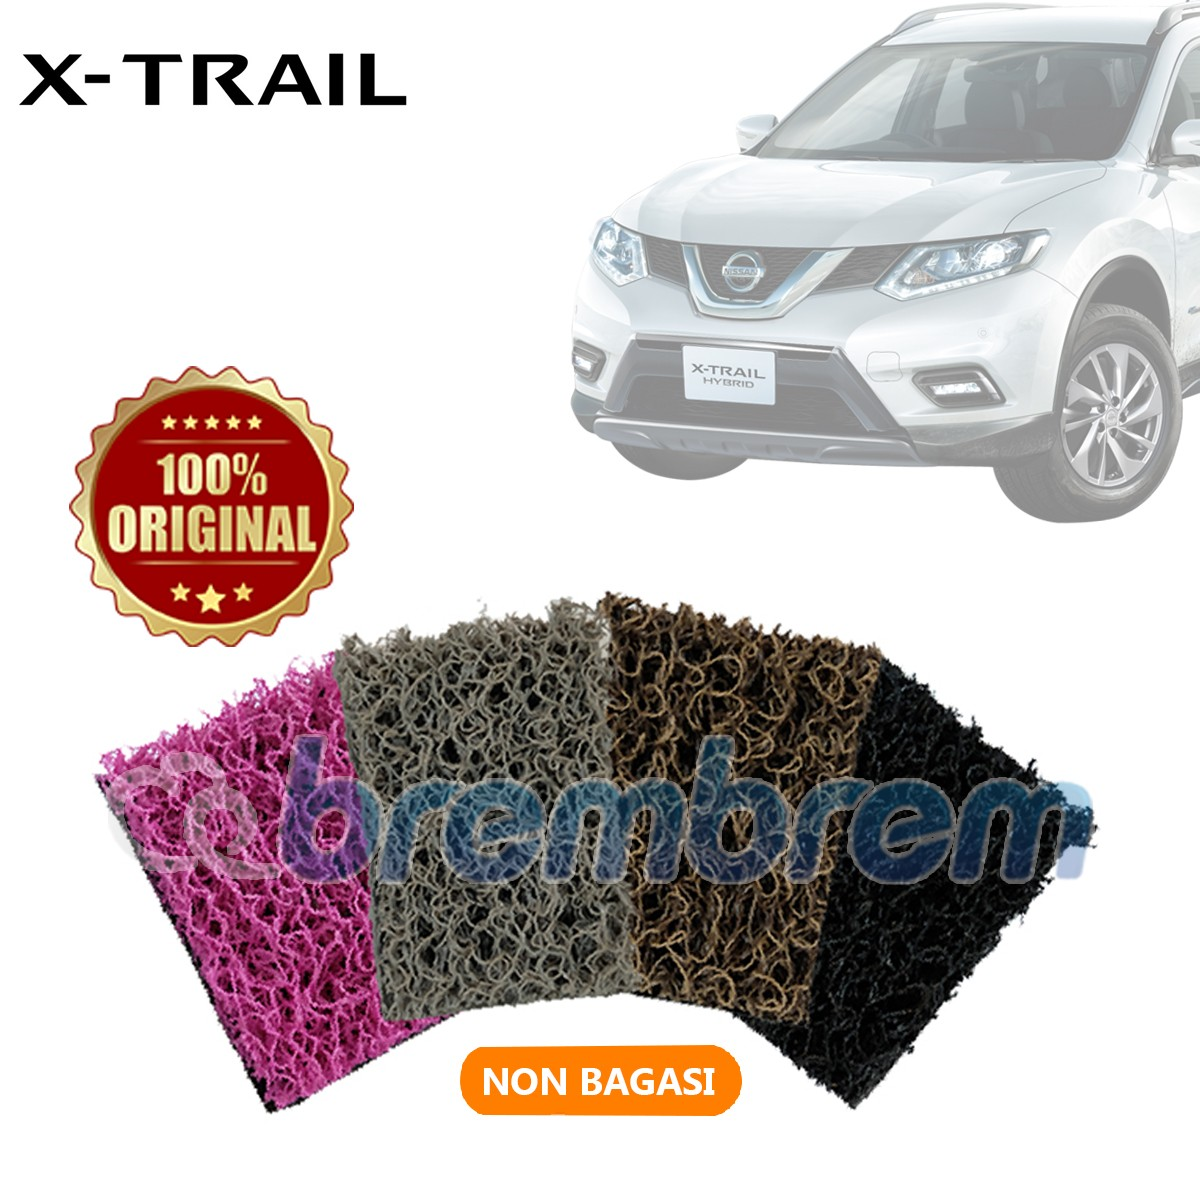 KARPET COMFORT DELUXE NON BAGASI NISSAN ALL NEW X-TRAIL